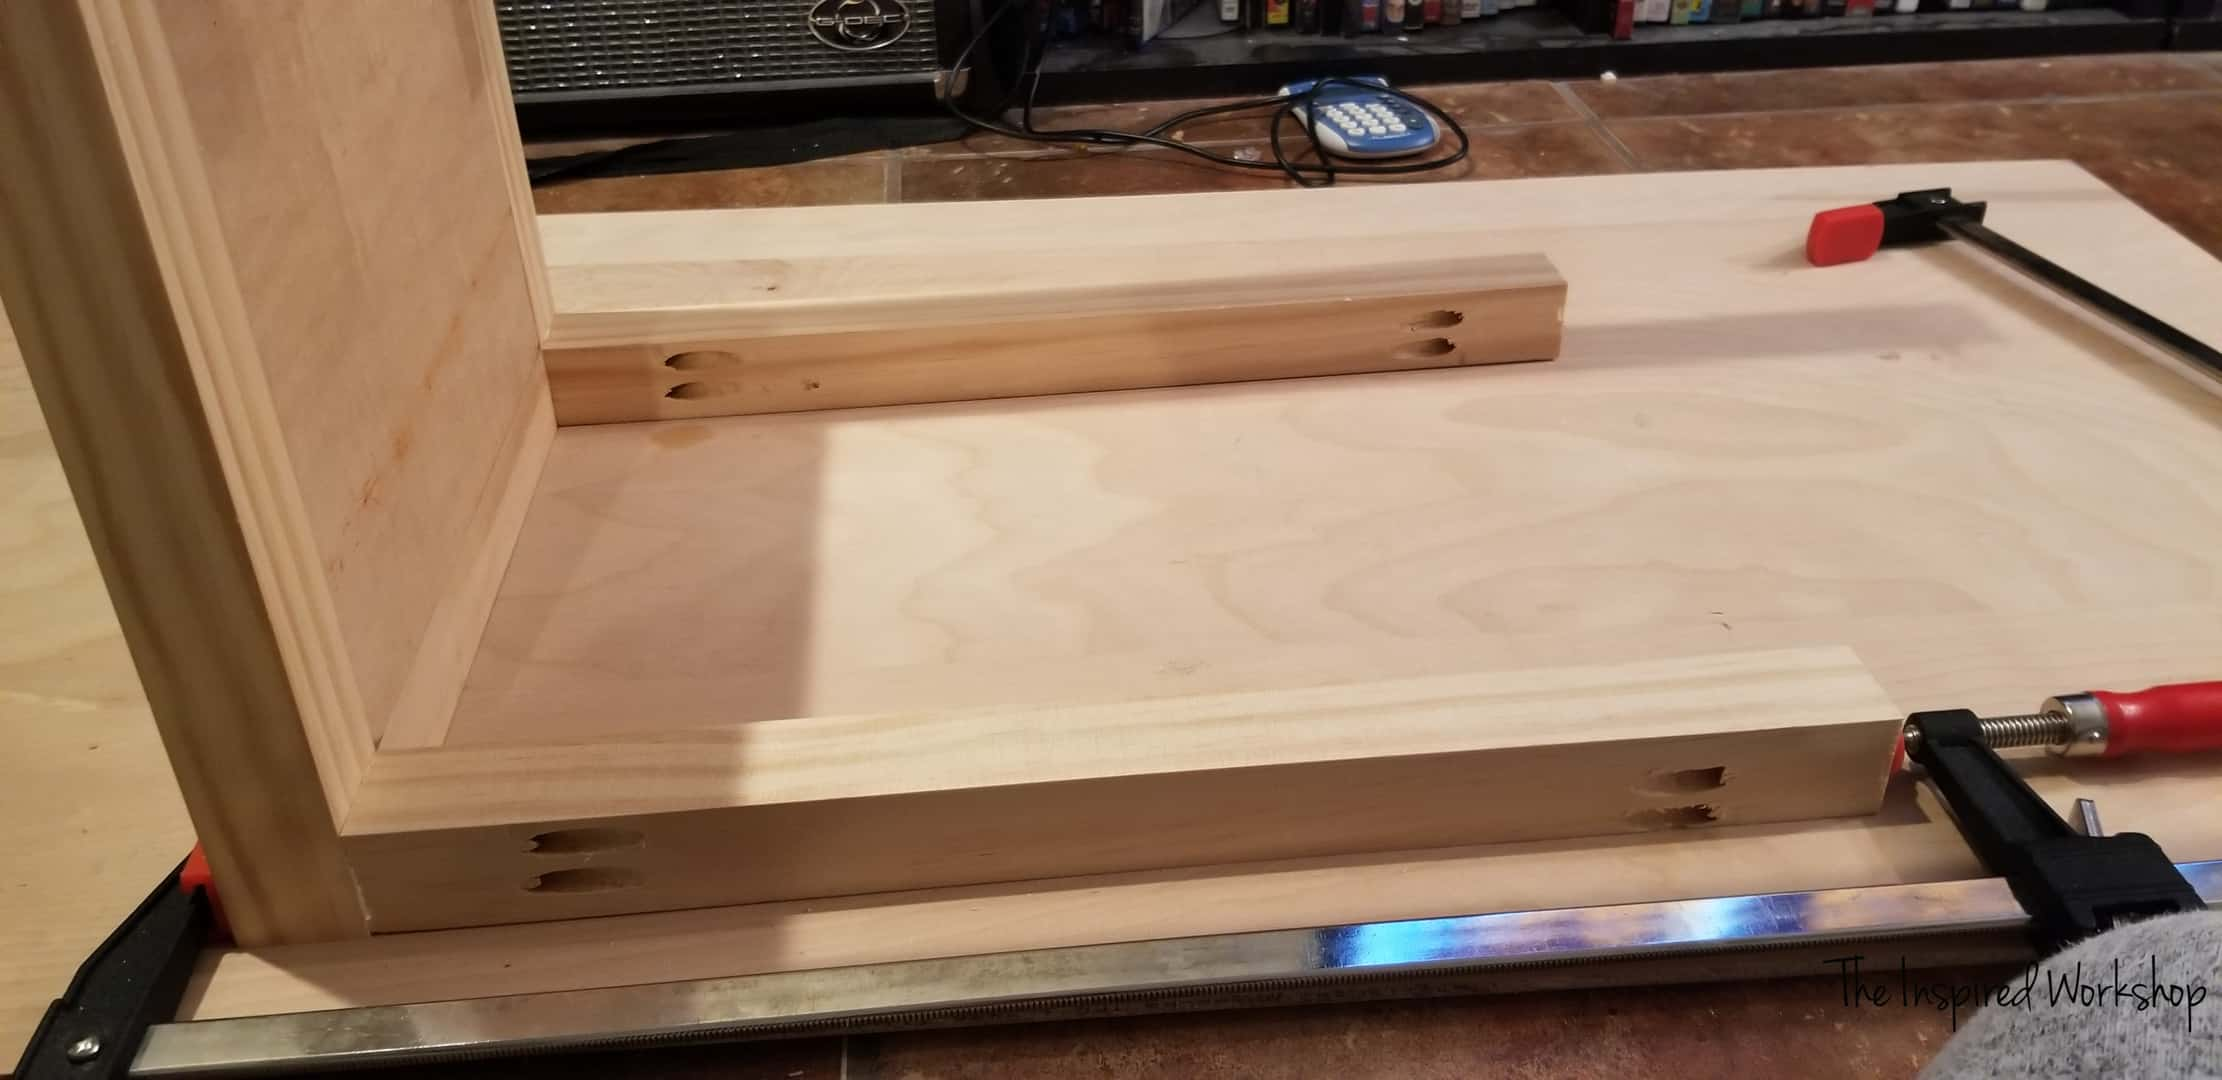 DIY Firewood Holder - Adding the upright legs